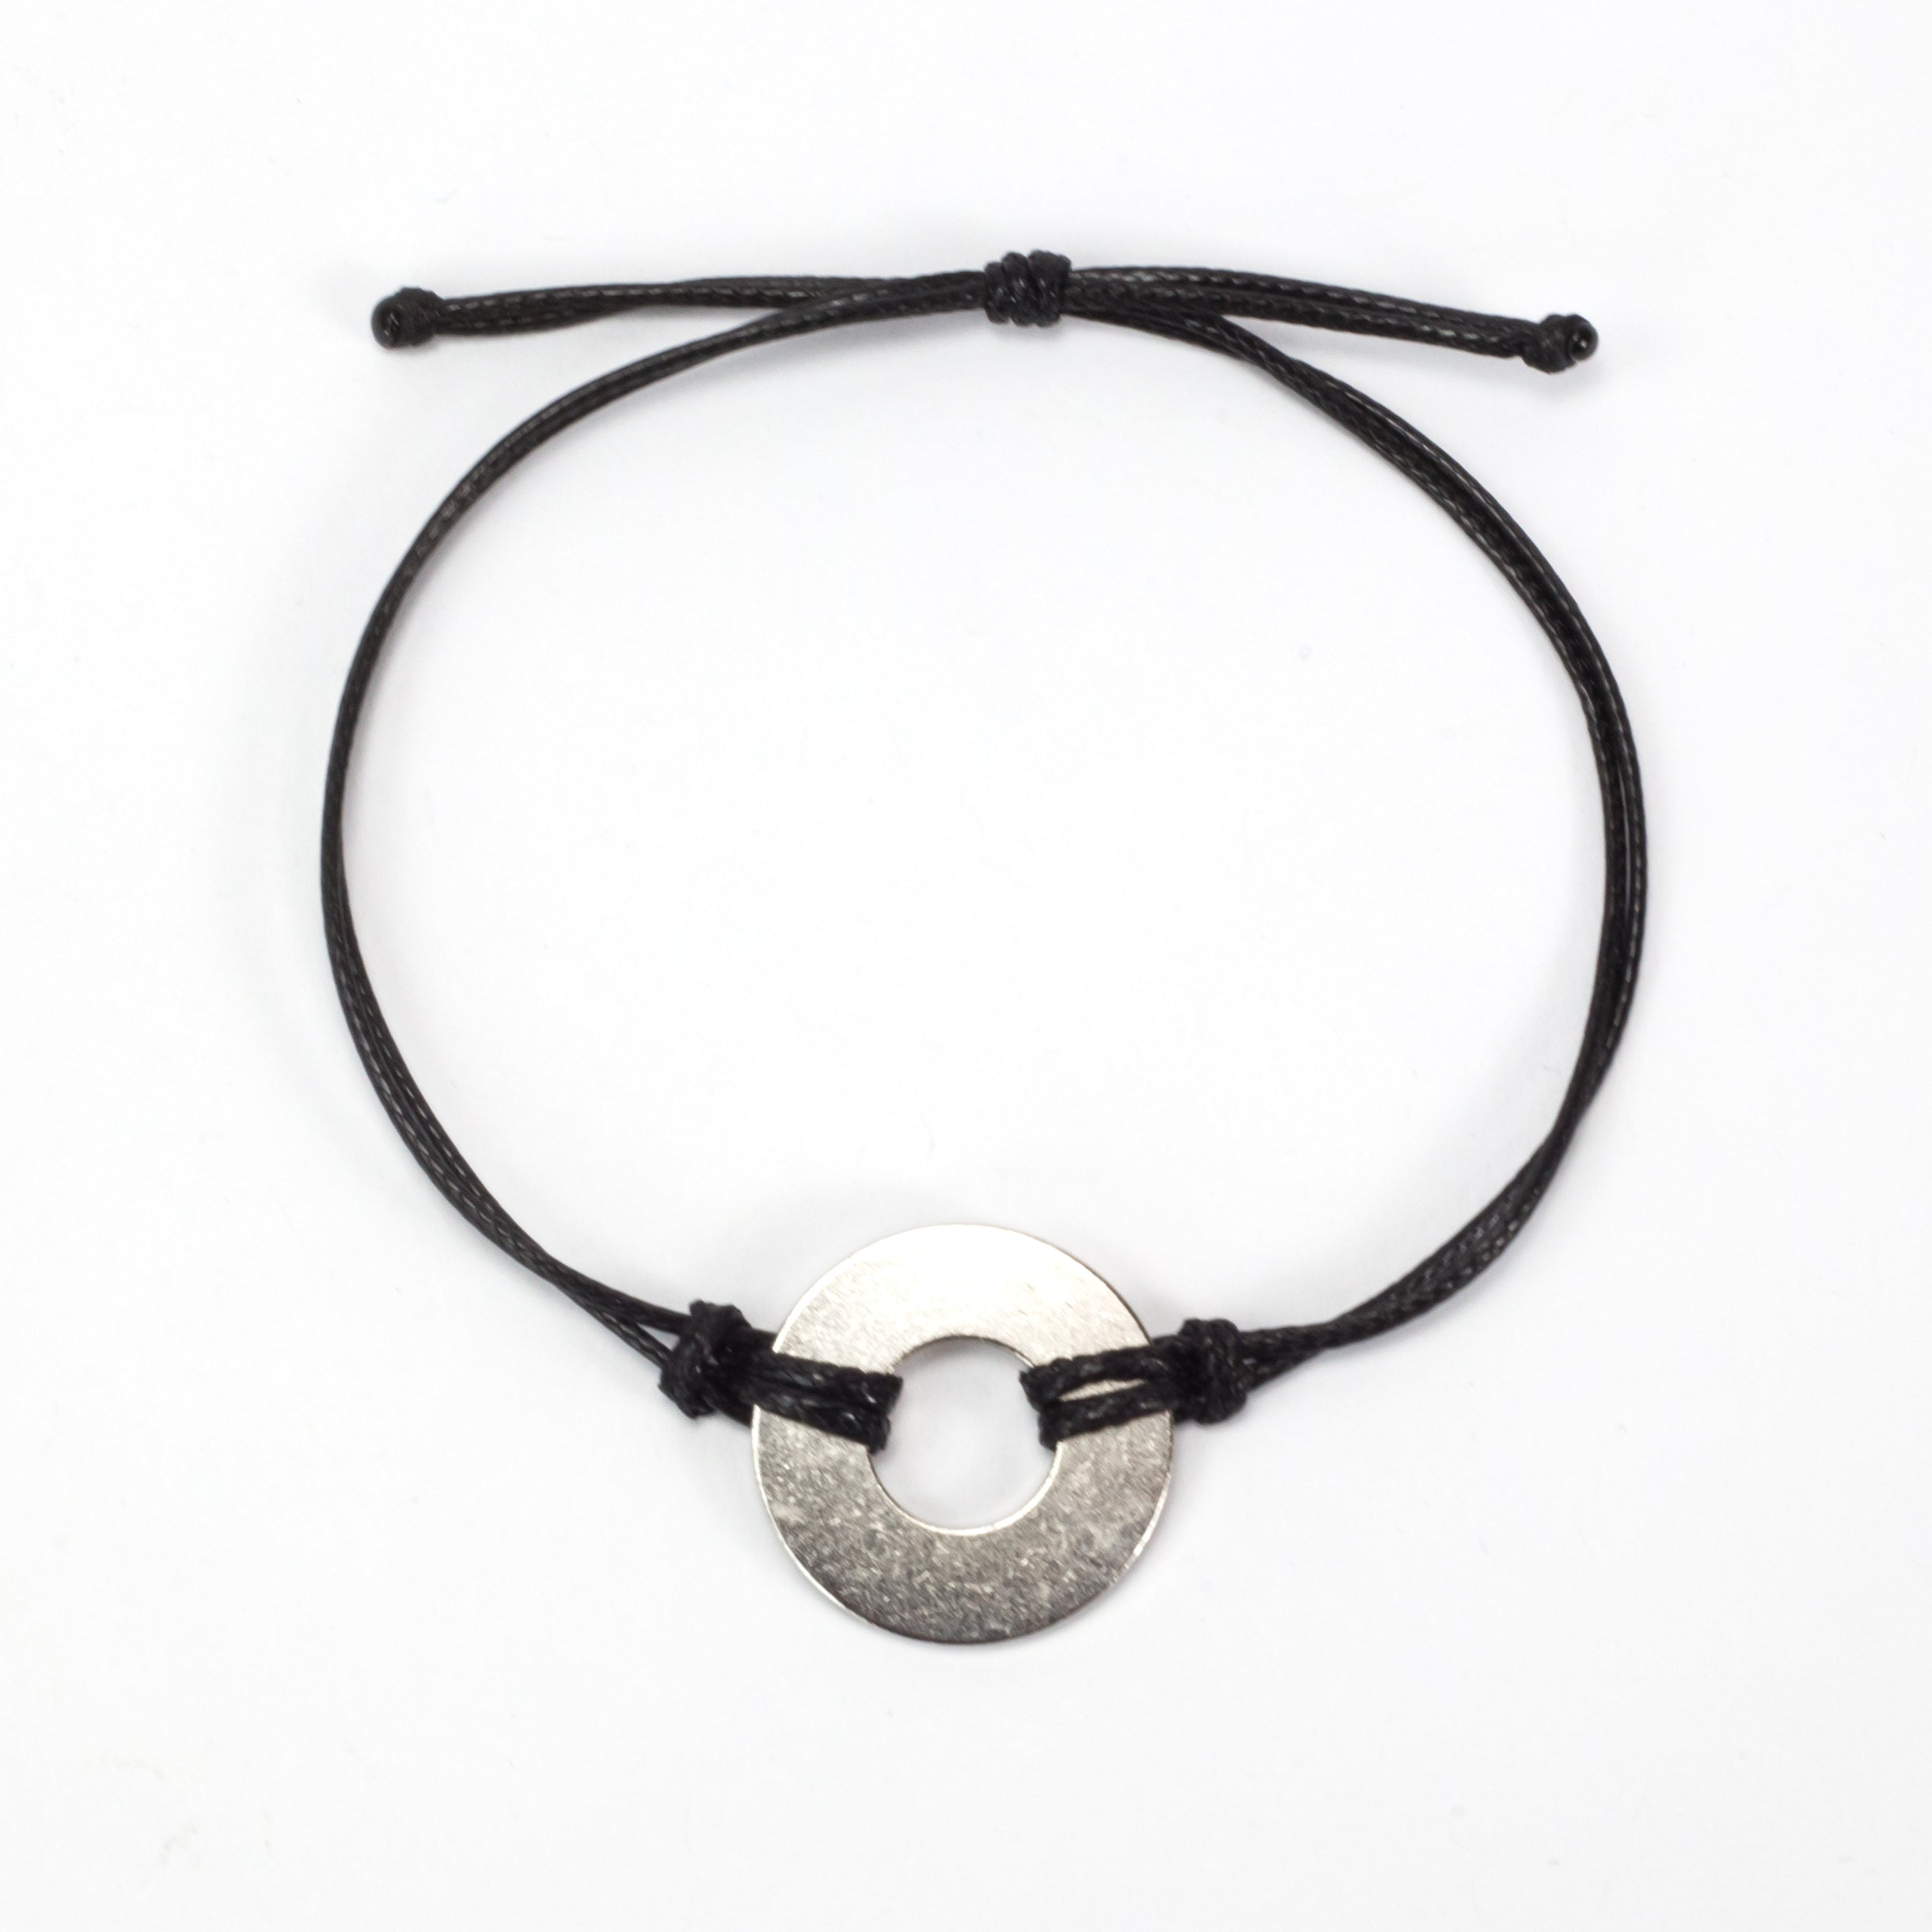 MyIntent Refill Classic Bracelet Black String with Nickel token